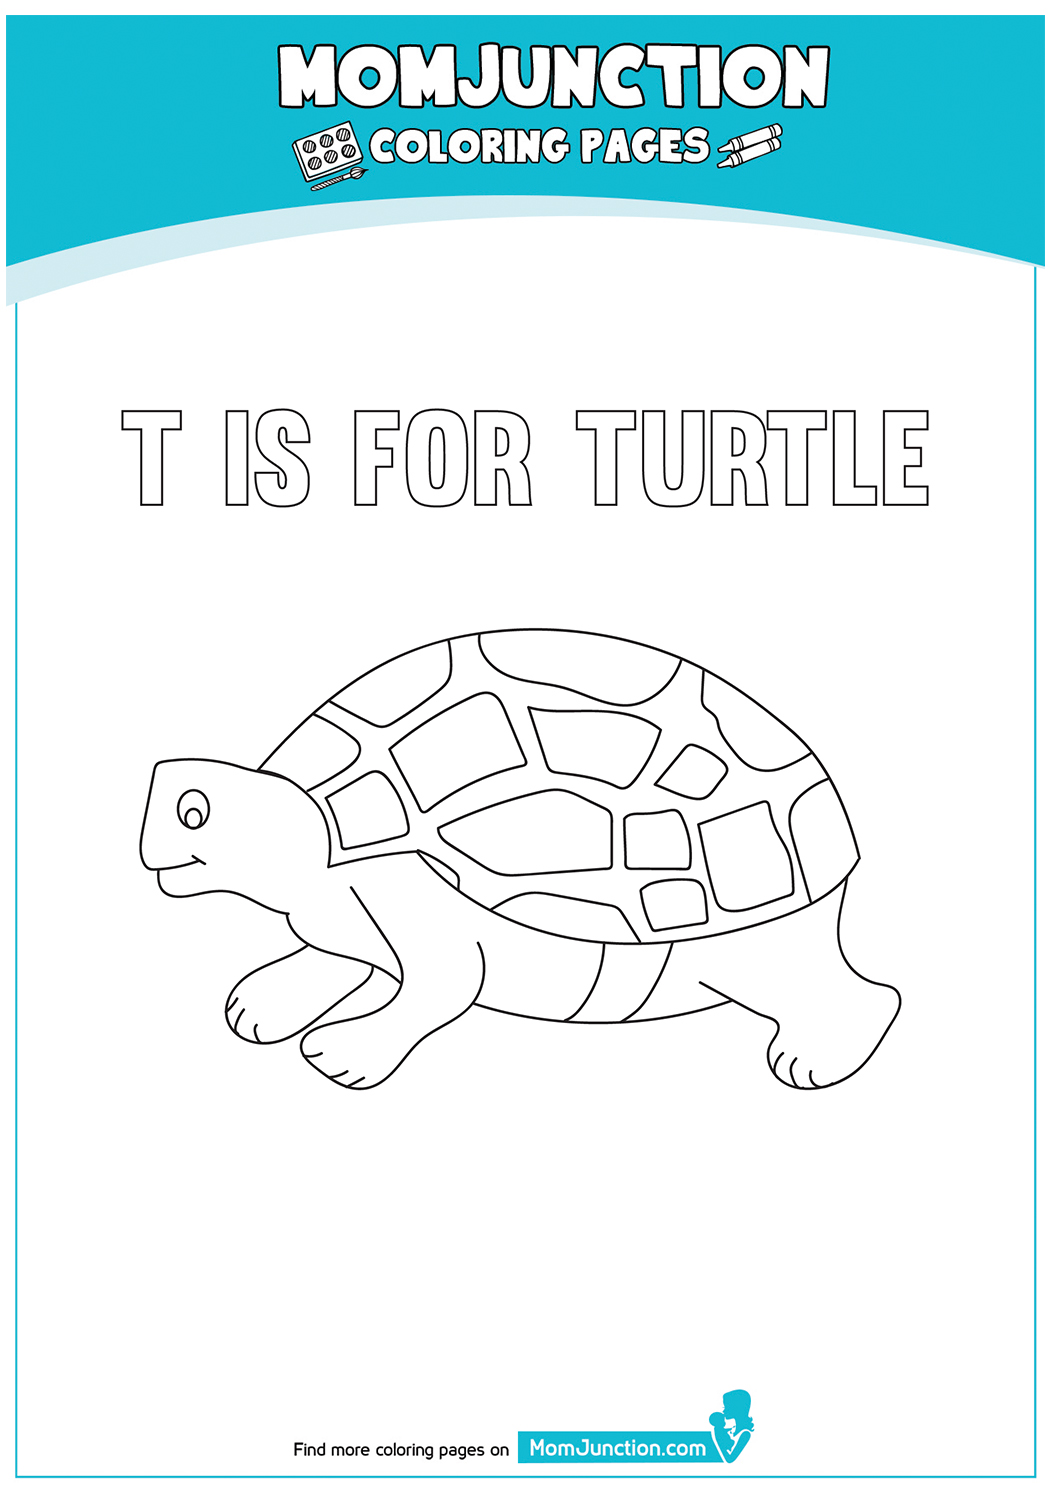 The-T-For-Turtle-17